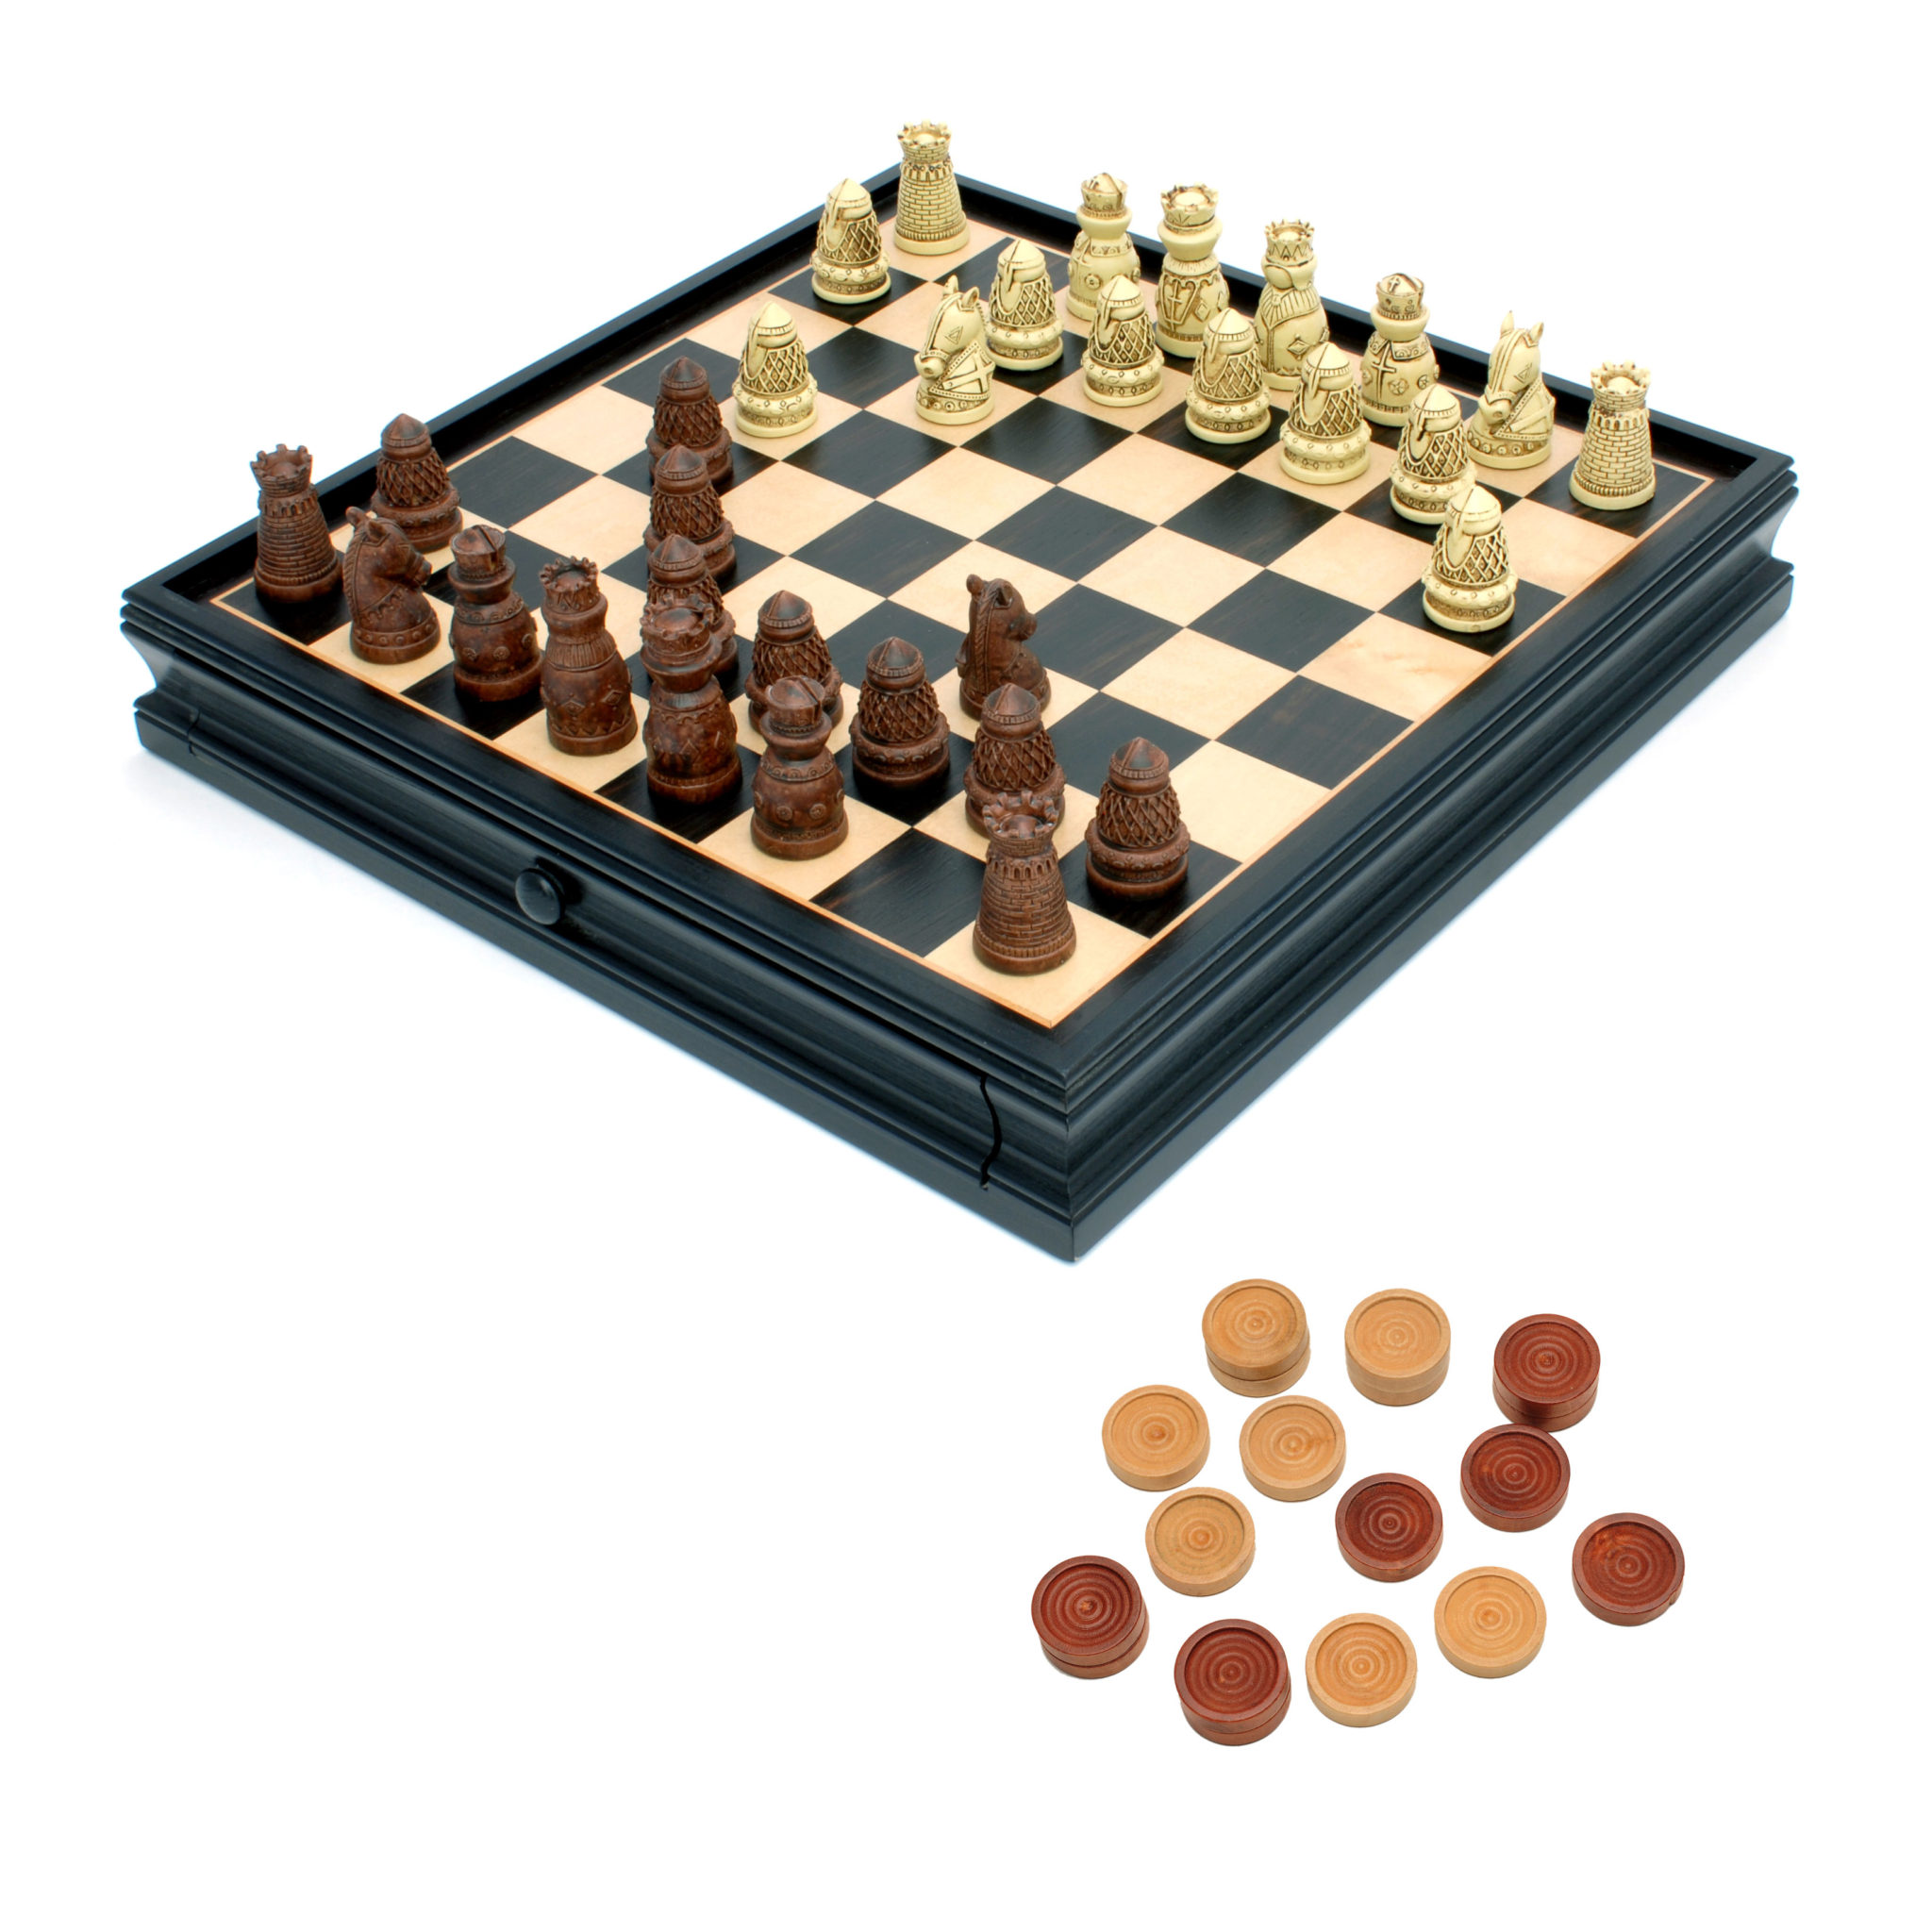 Medieval Chess & Checkers Set - Polystone Pieces, Black Stained Wooden Board with Storage Drawer – 15 in. (265915)